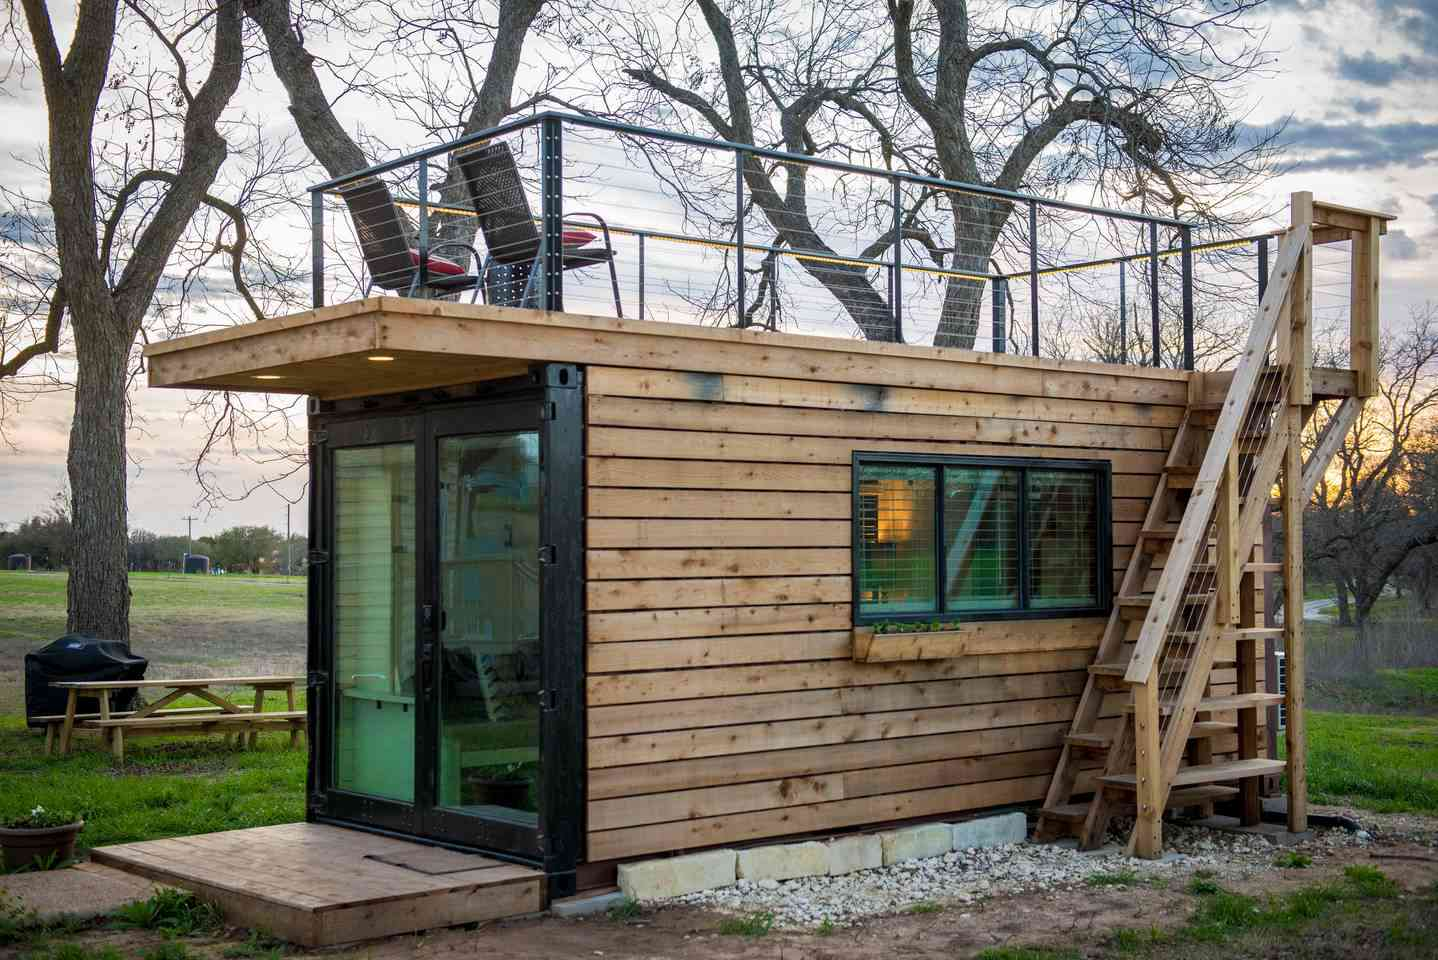 Superb 13 Tiny Houses For Rent On Airbnb That Make It Easy To See Best Image Libraries Weasiibadanjobscom